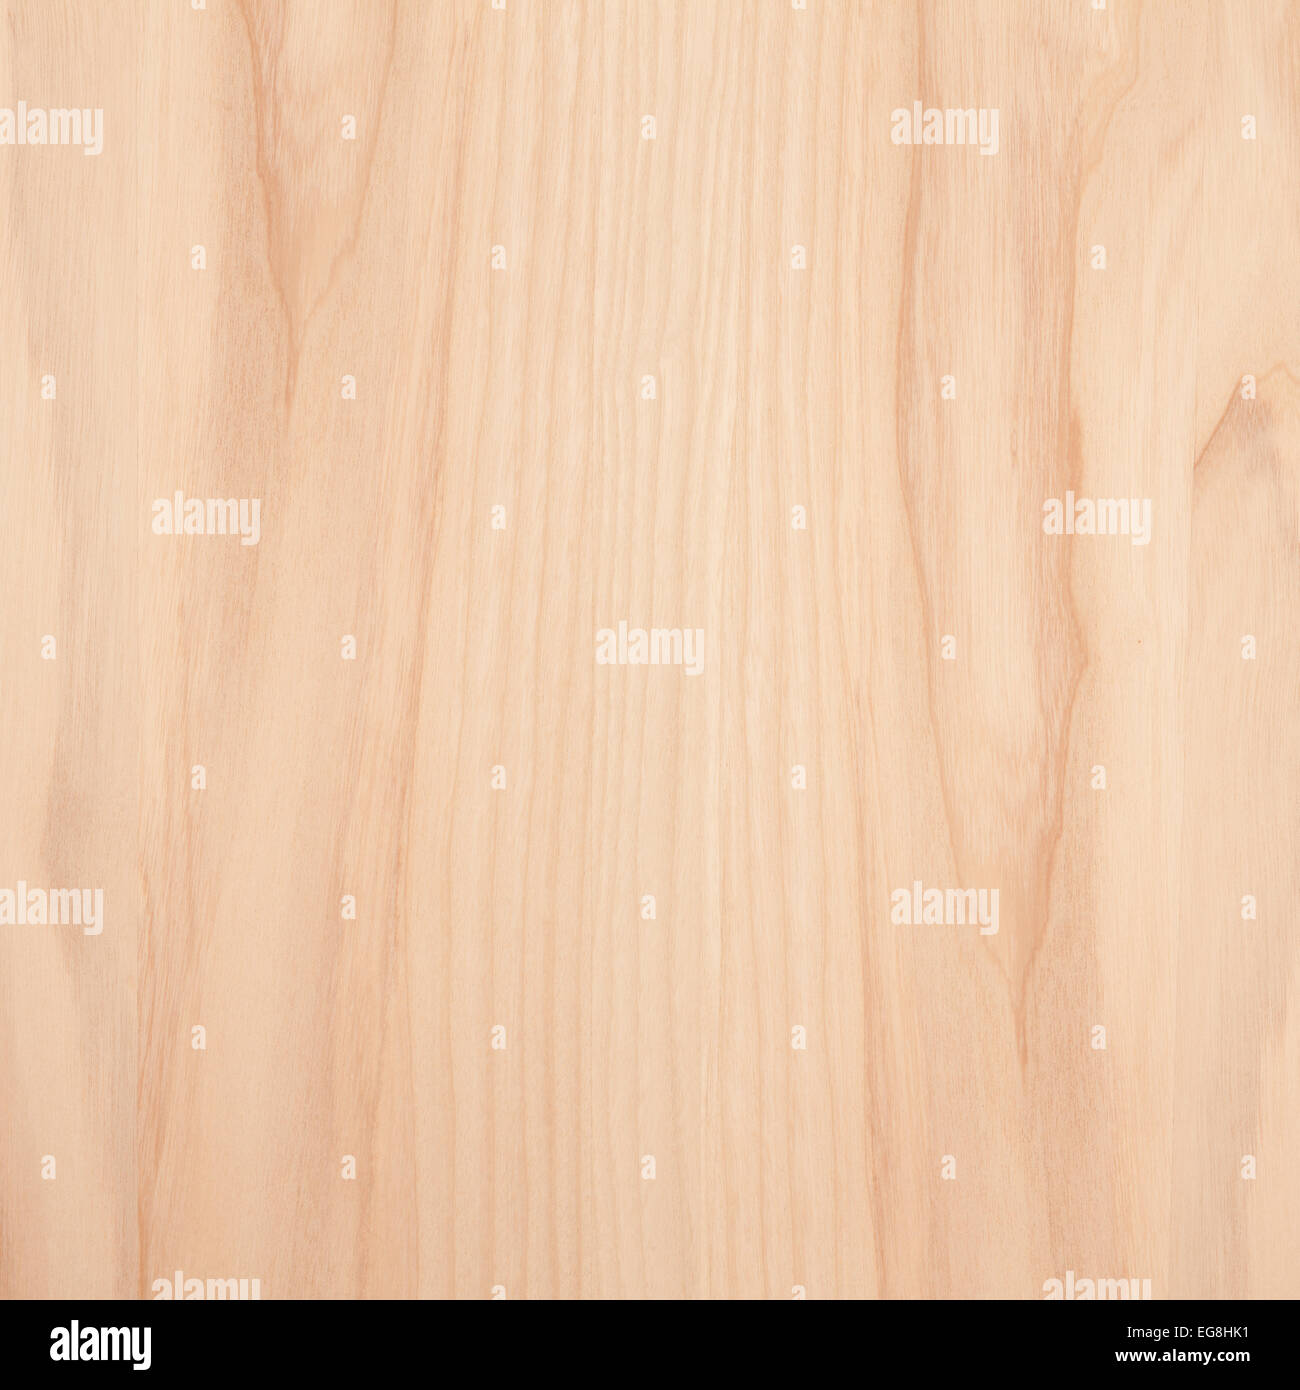 raw wooden plank background or wood grain texture - Stock Image